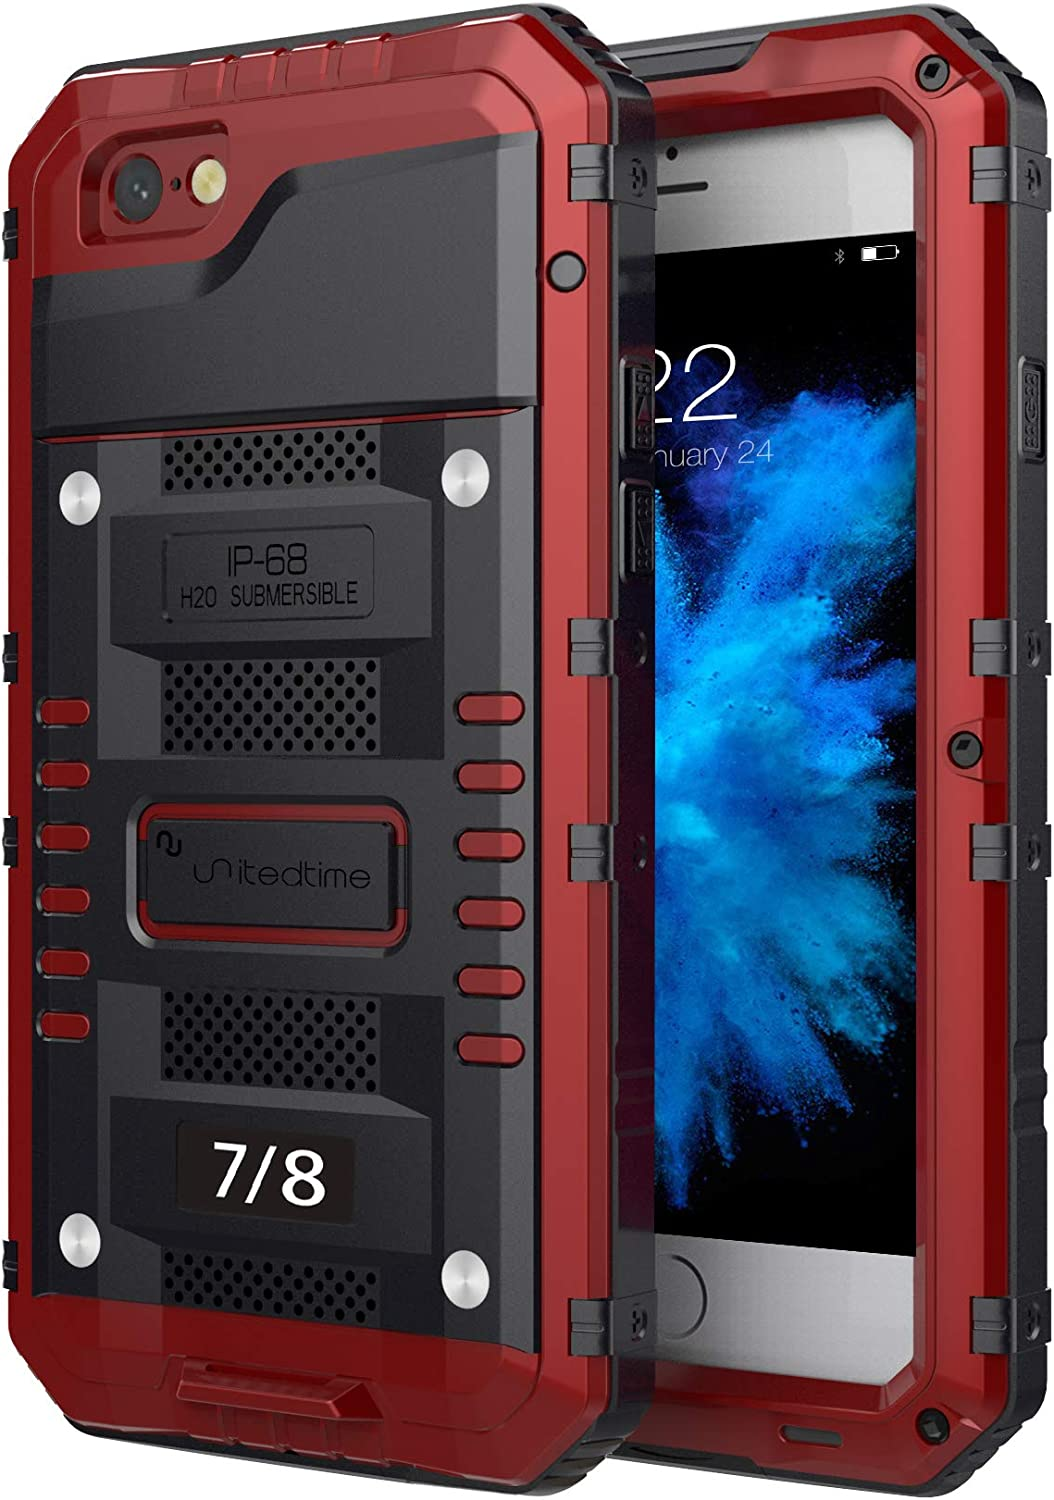 """Waterproof Heavy Duty Protective Case for iPhone 7 /iPhone 8 /SE 2020, 4.7"""" Inch with Aluminum Frame Body Rugged Hard Silicone, Military Grade with Built-in Screen Protector Drop Defend (Red)"""